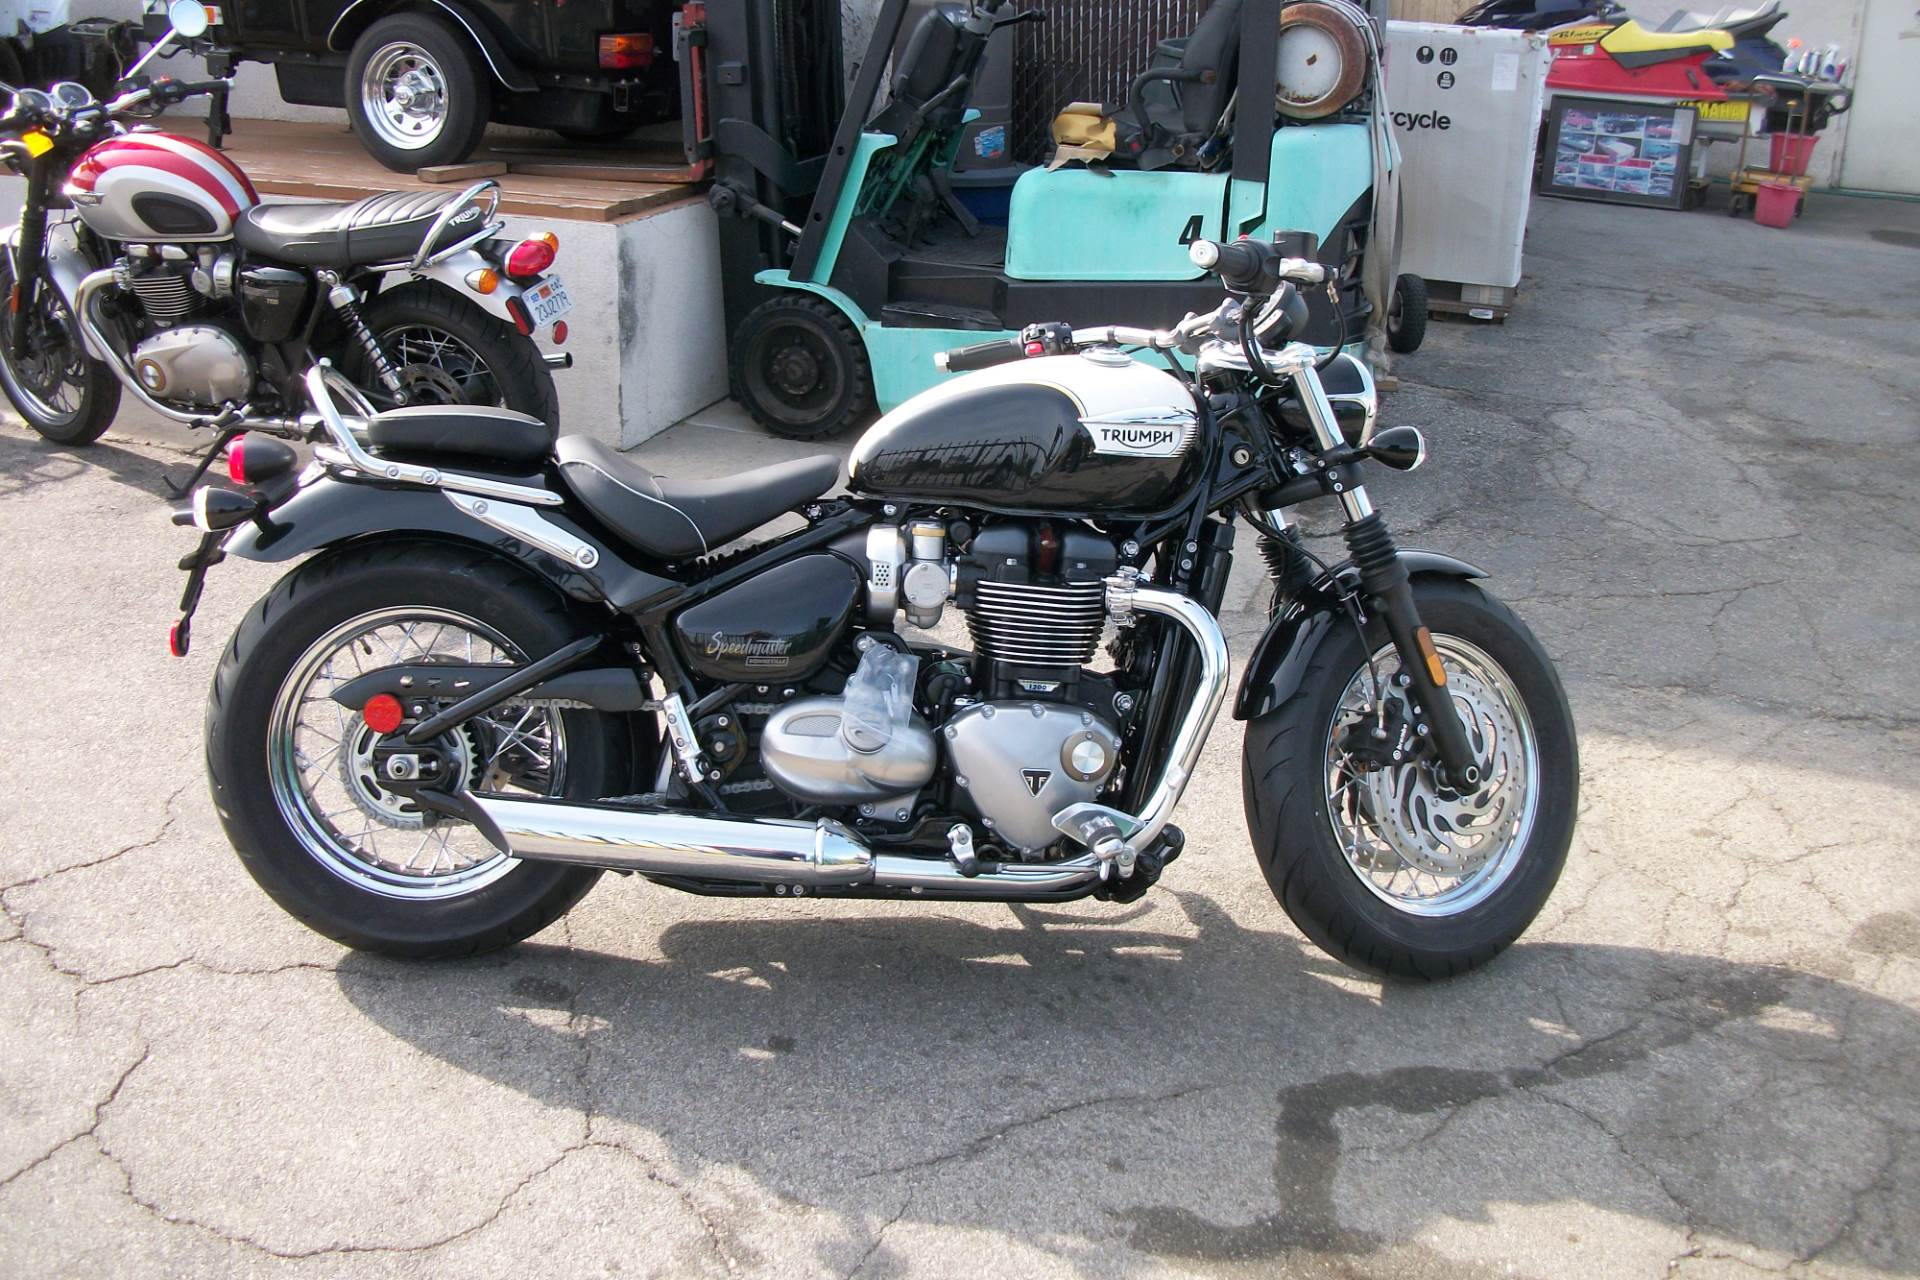 New 2018 Triumph Bonneville Speedmaster Motorcycles in Simi Valley, CA